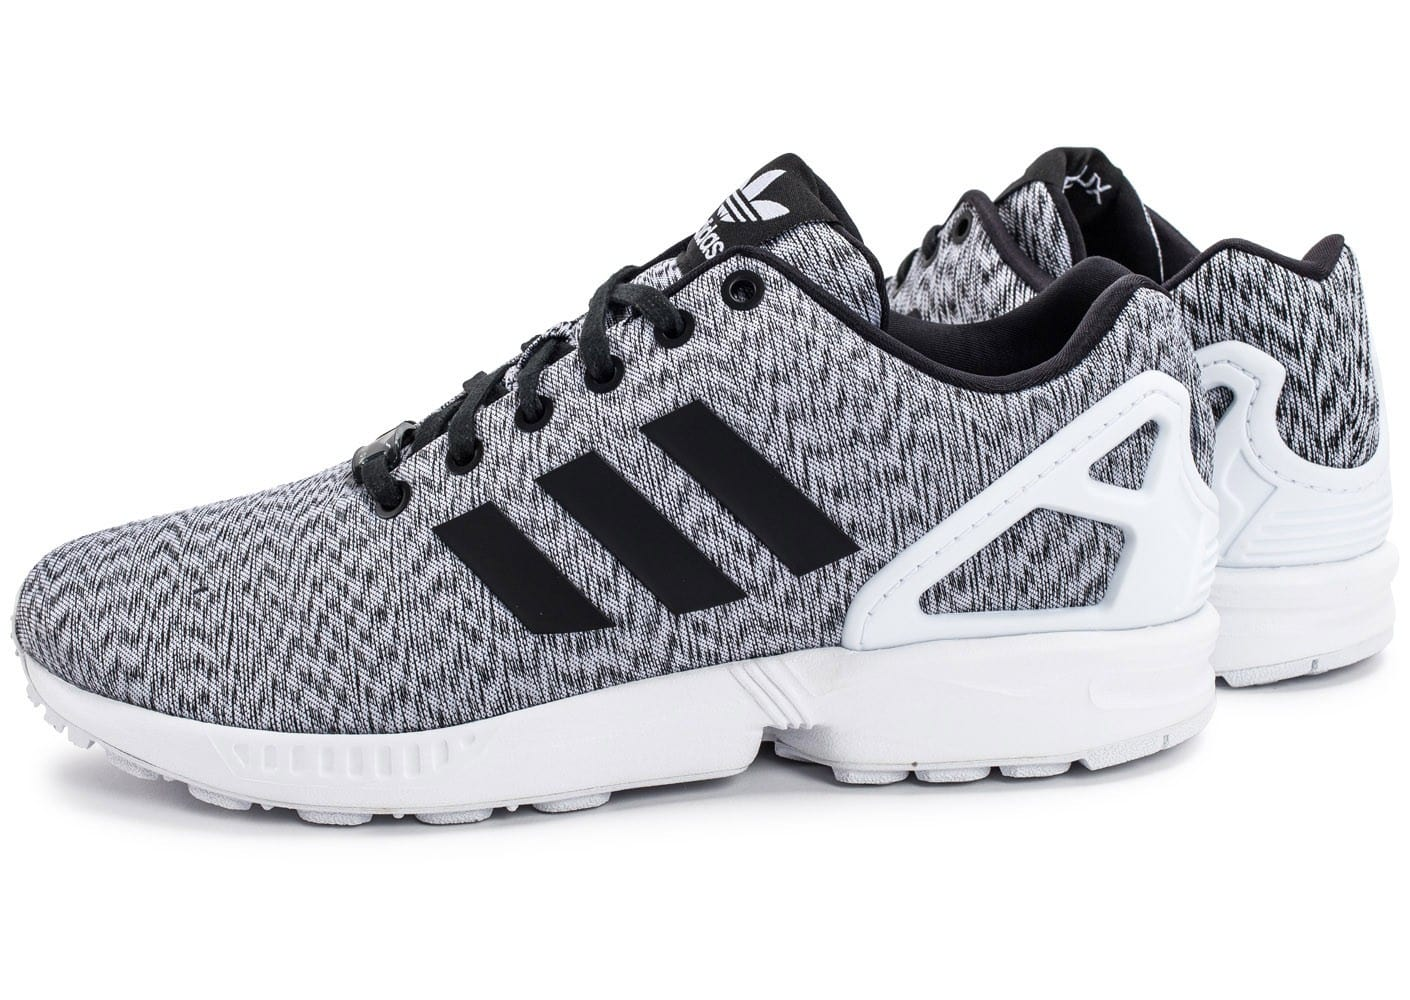 adidas zx flux mesh blanche chaussures homme chausport. Black Bedroom Furniture Sets. Home Design Ideas